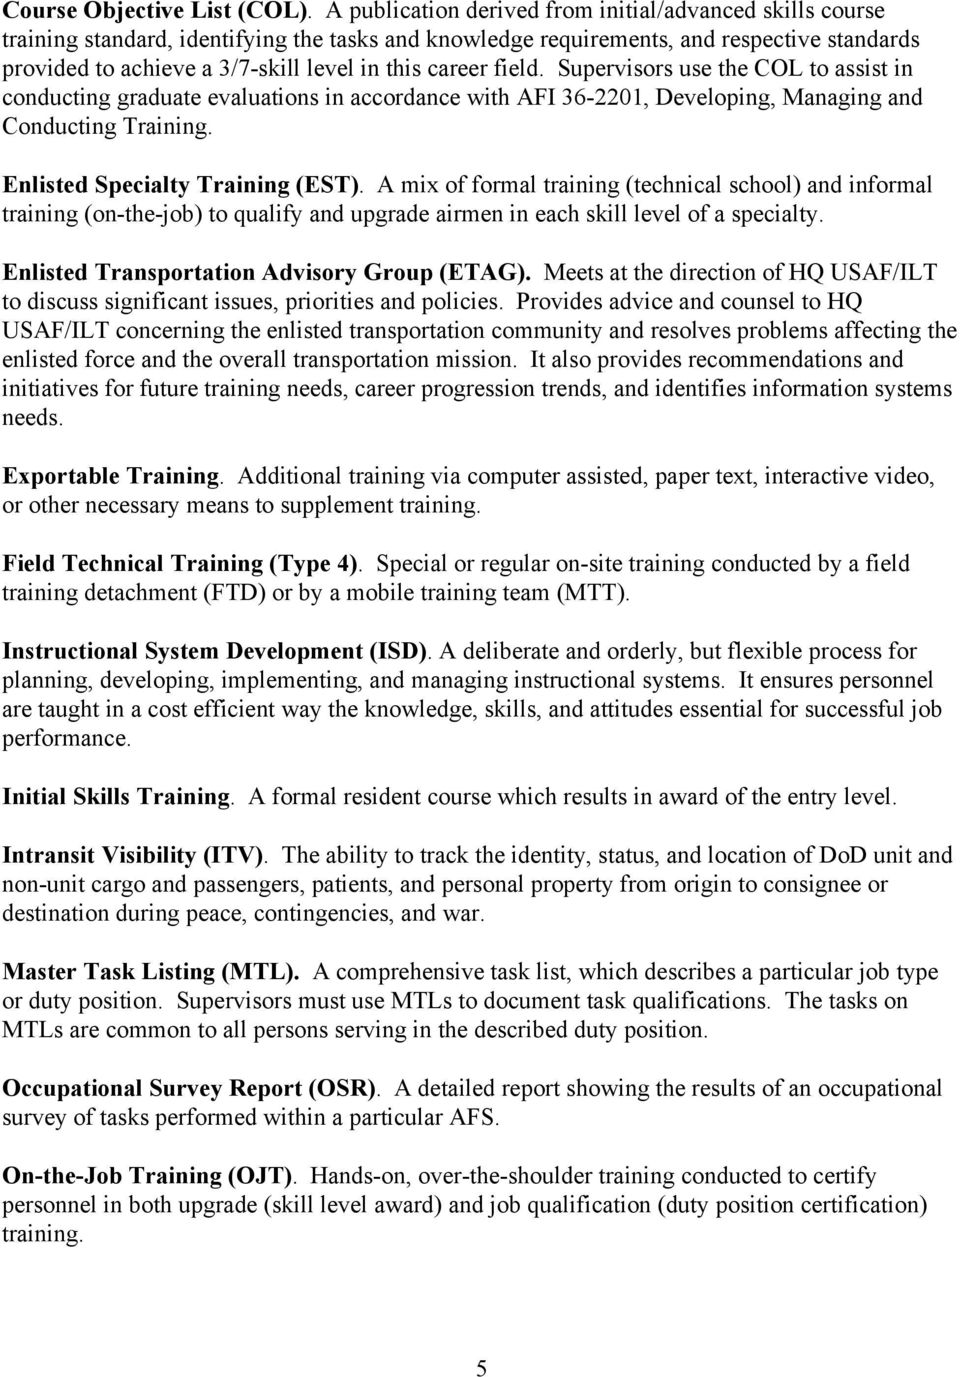 afsc tx air transportation specialty career field education and career field supervisors use the col to assist in conducting graduate evaluations in accordance